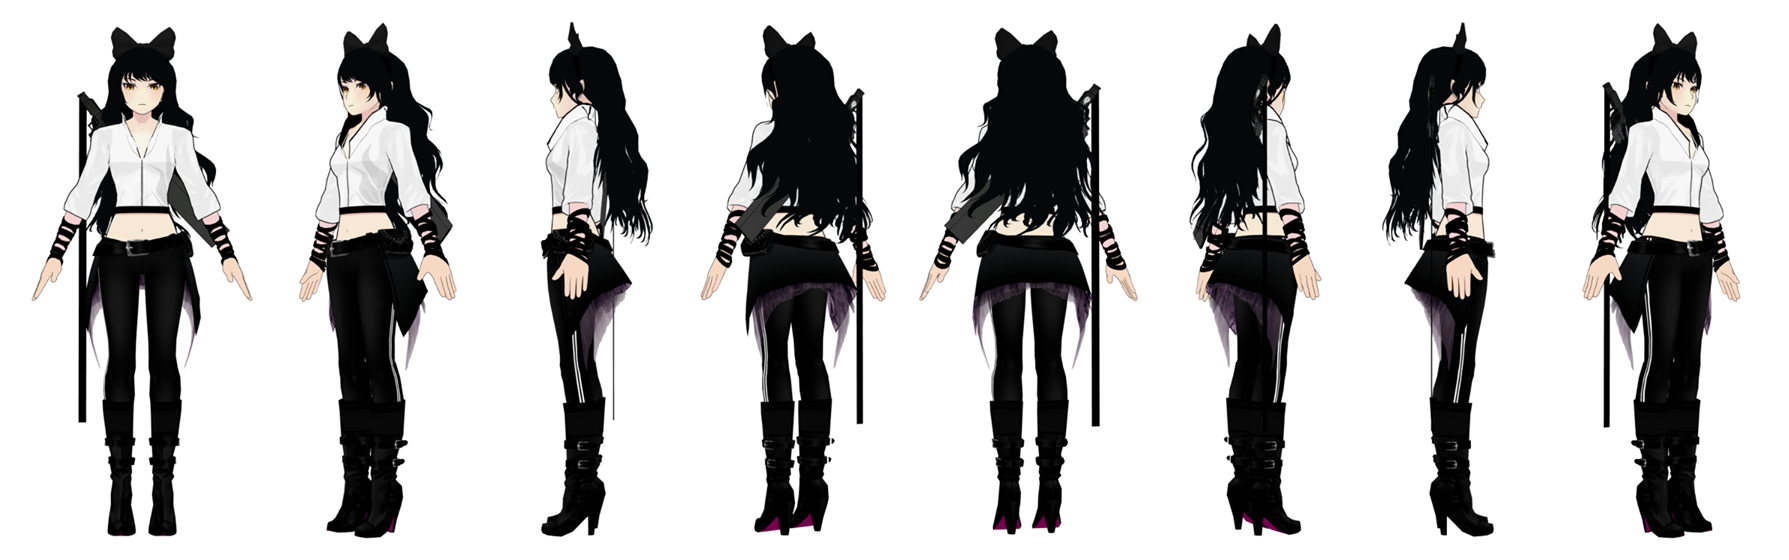 Watch besides Lie Ren Rwby Skin Request Hhh as well Fate X RWBY The  pleted Edition 525942721 further File Ruby and Weiss 2 in addition File Blake intruder turnaround. on rwby characters vol 3